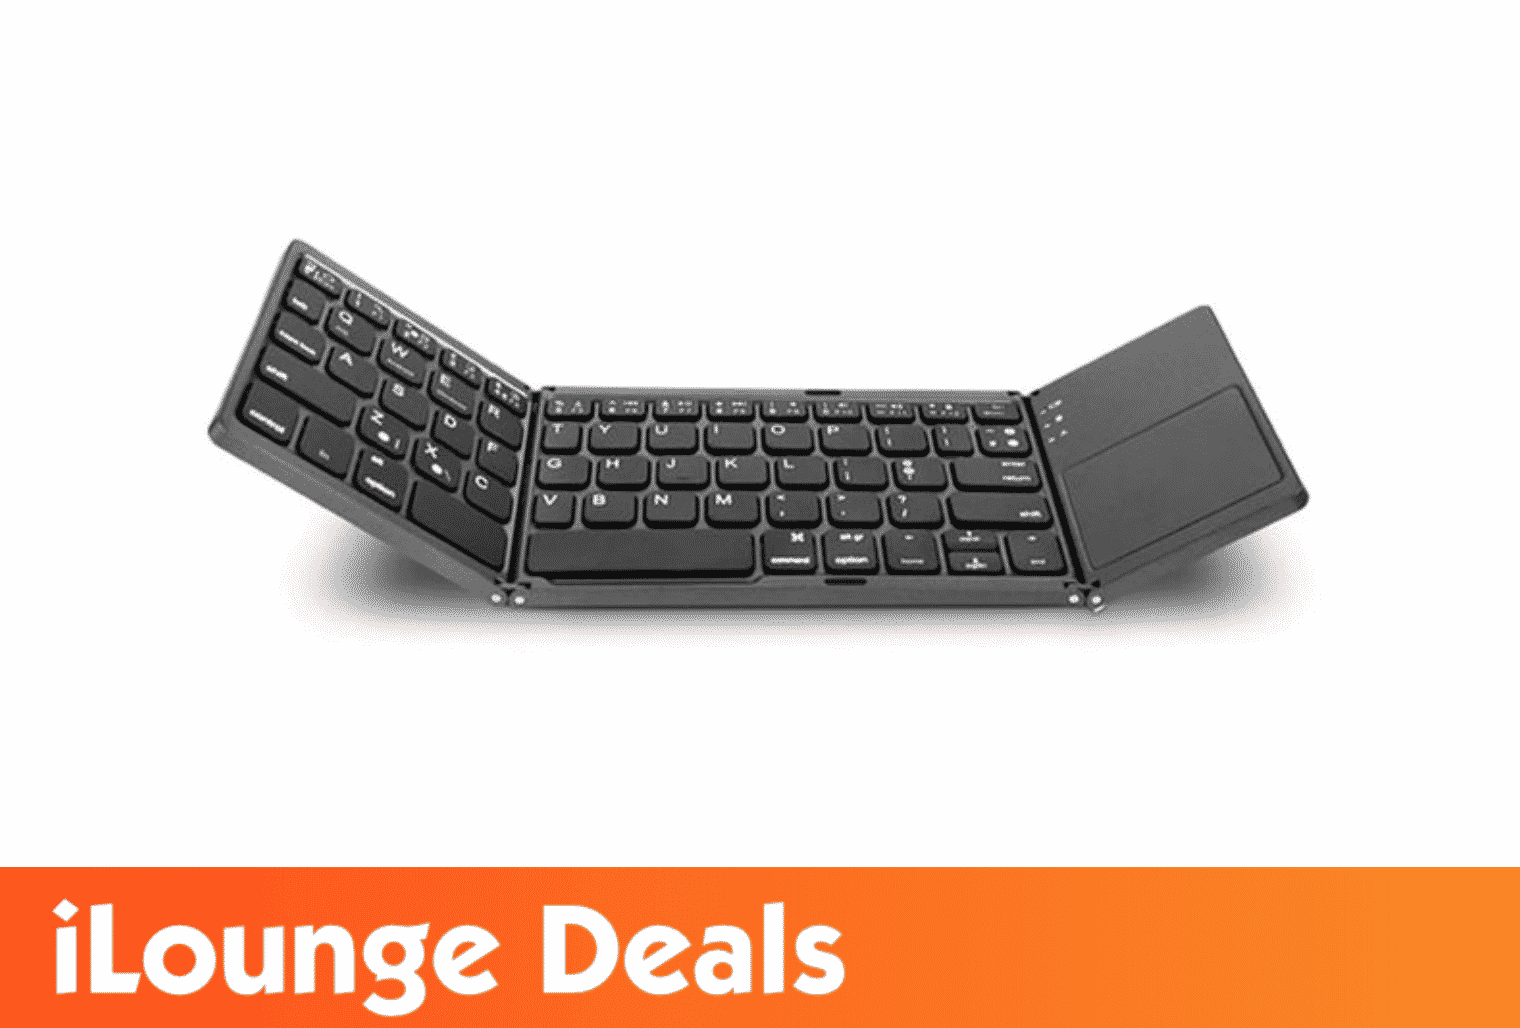 Universal Mini Foldable Wireless Keyboard with Touchpad deal by iLounge